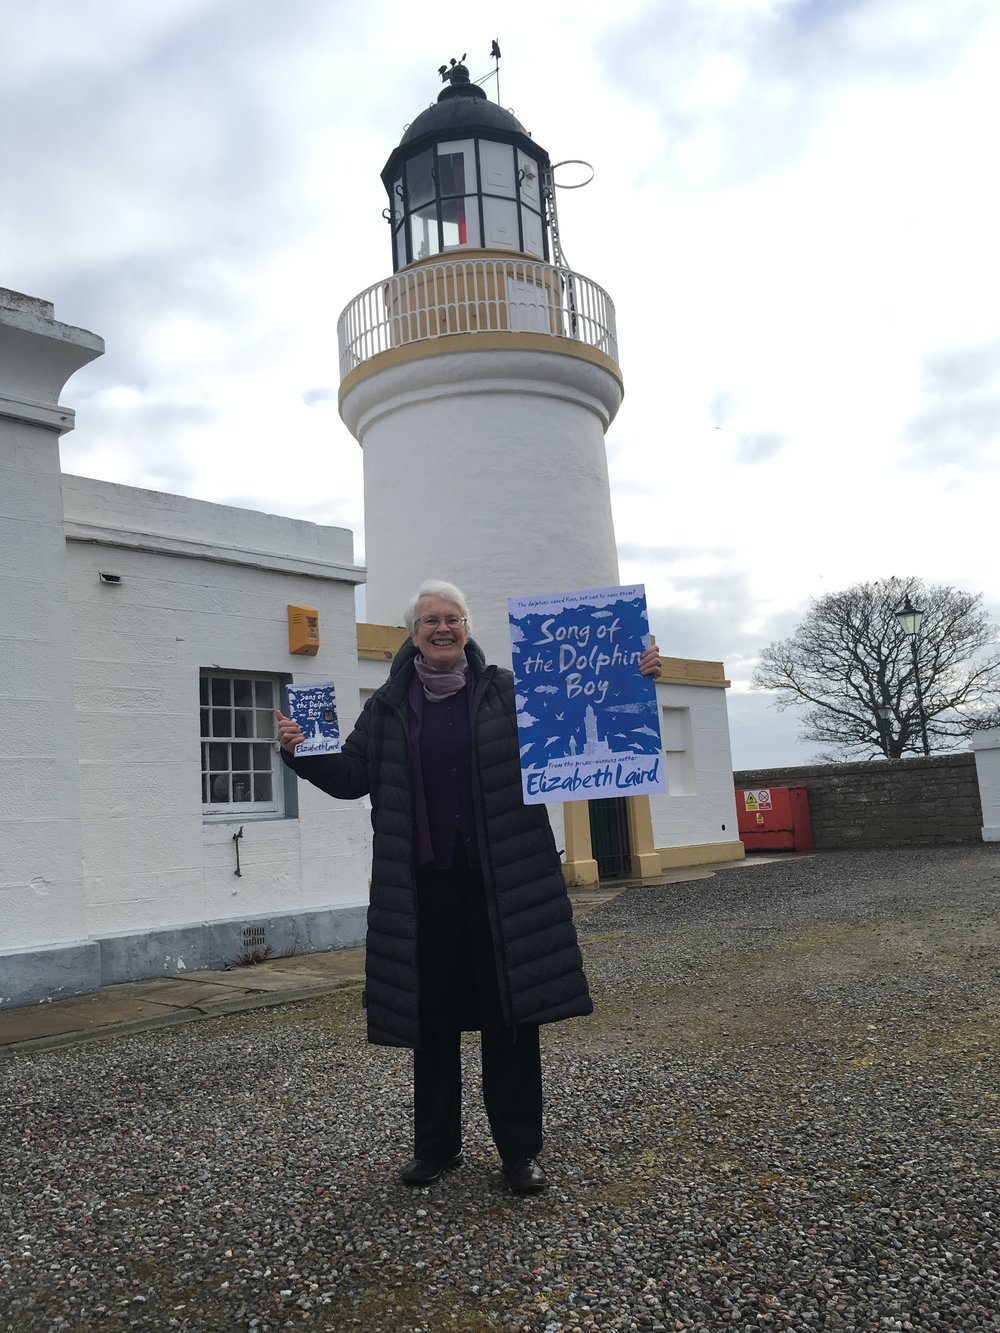 Here I am with my brand new book at the wonderful Cromarty Lighthouse.